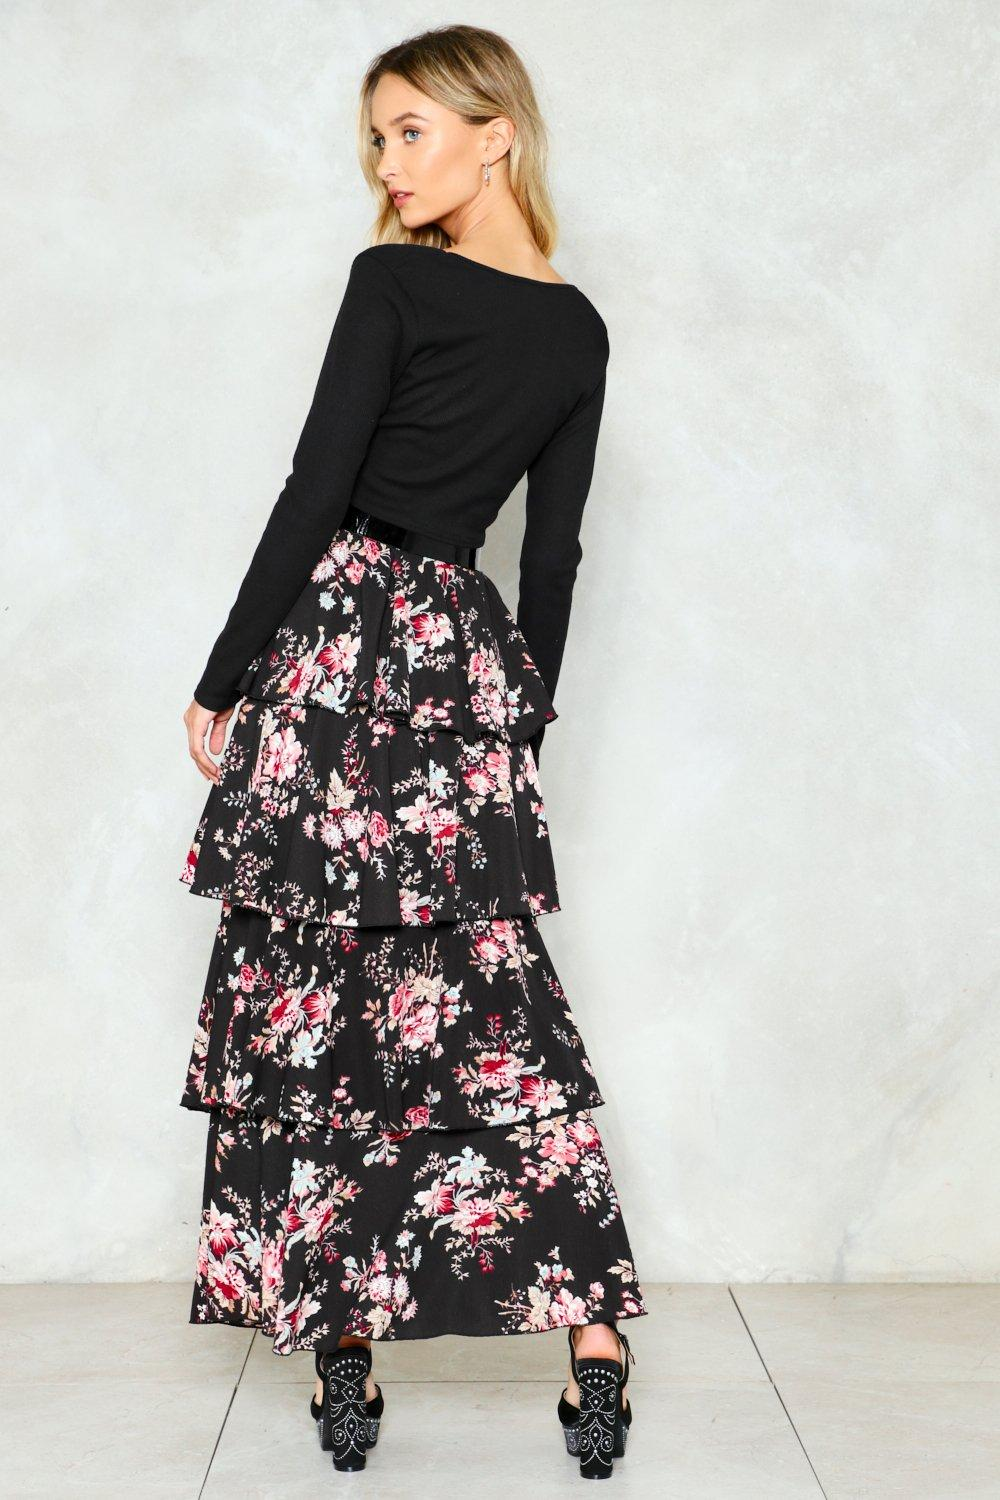 49cdfeb5294 Womens Black Let the Tiers Fall Floral Maxi Skirt